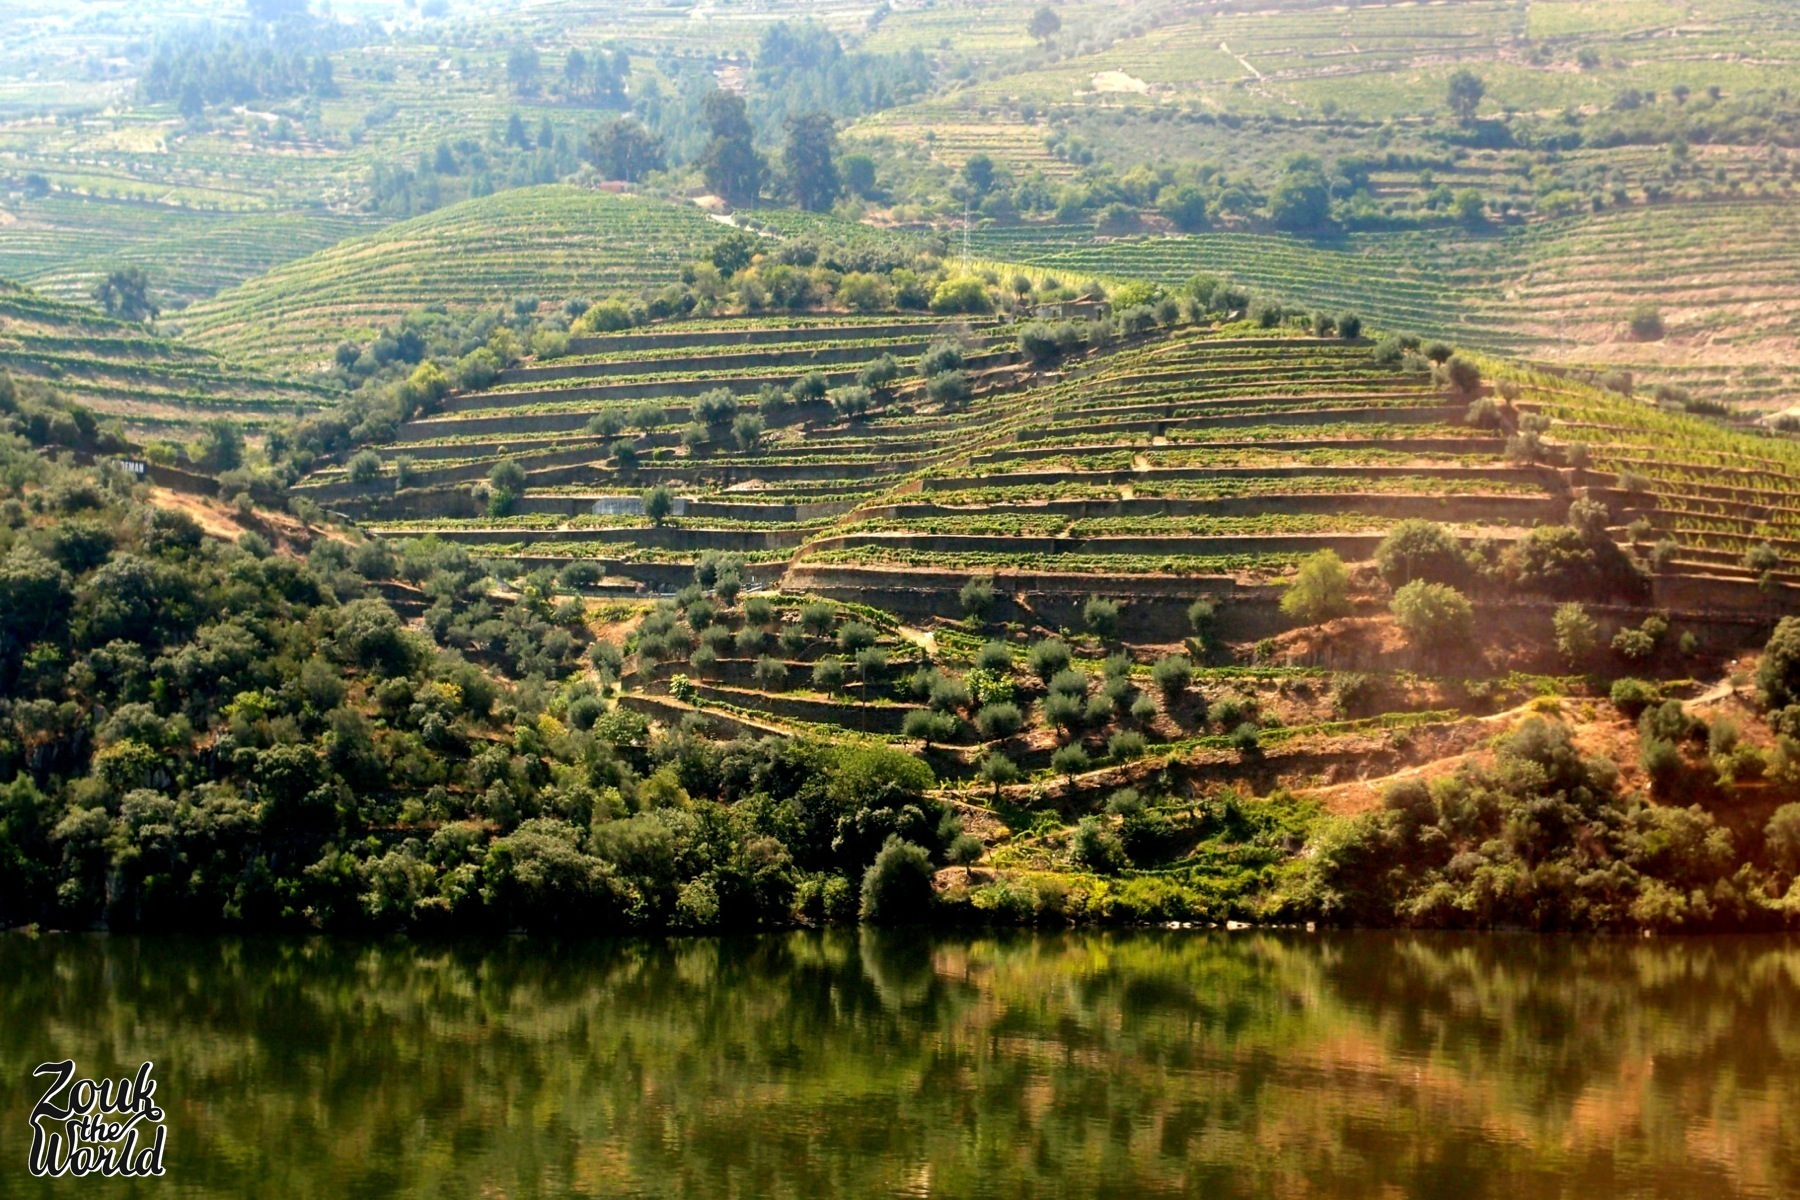 The views of the river and the vineyards along the way from Porto to Pinhão were beautiful!